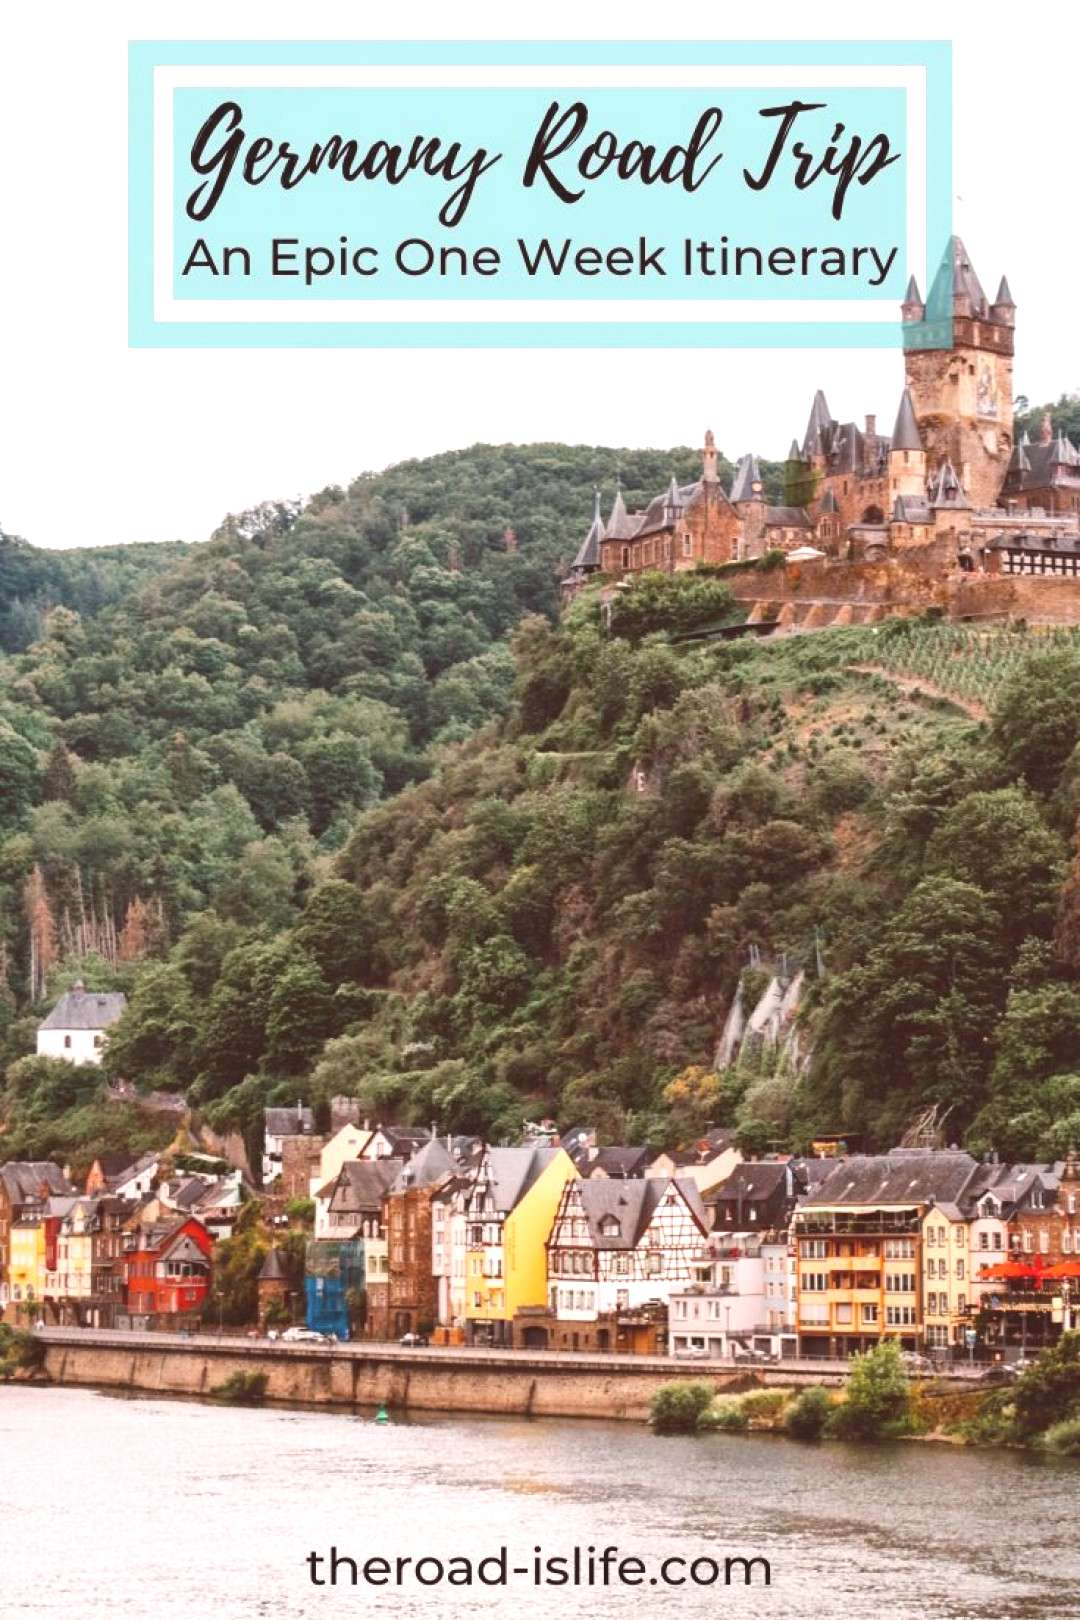 A Fairy Tale Germany Road Trip - The Ultimate One Week Itinerary Starting in Cologne and ending in